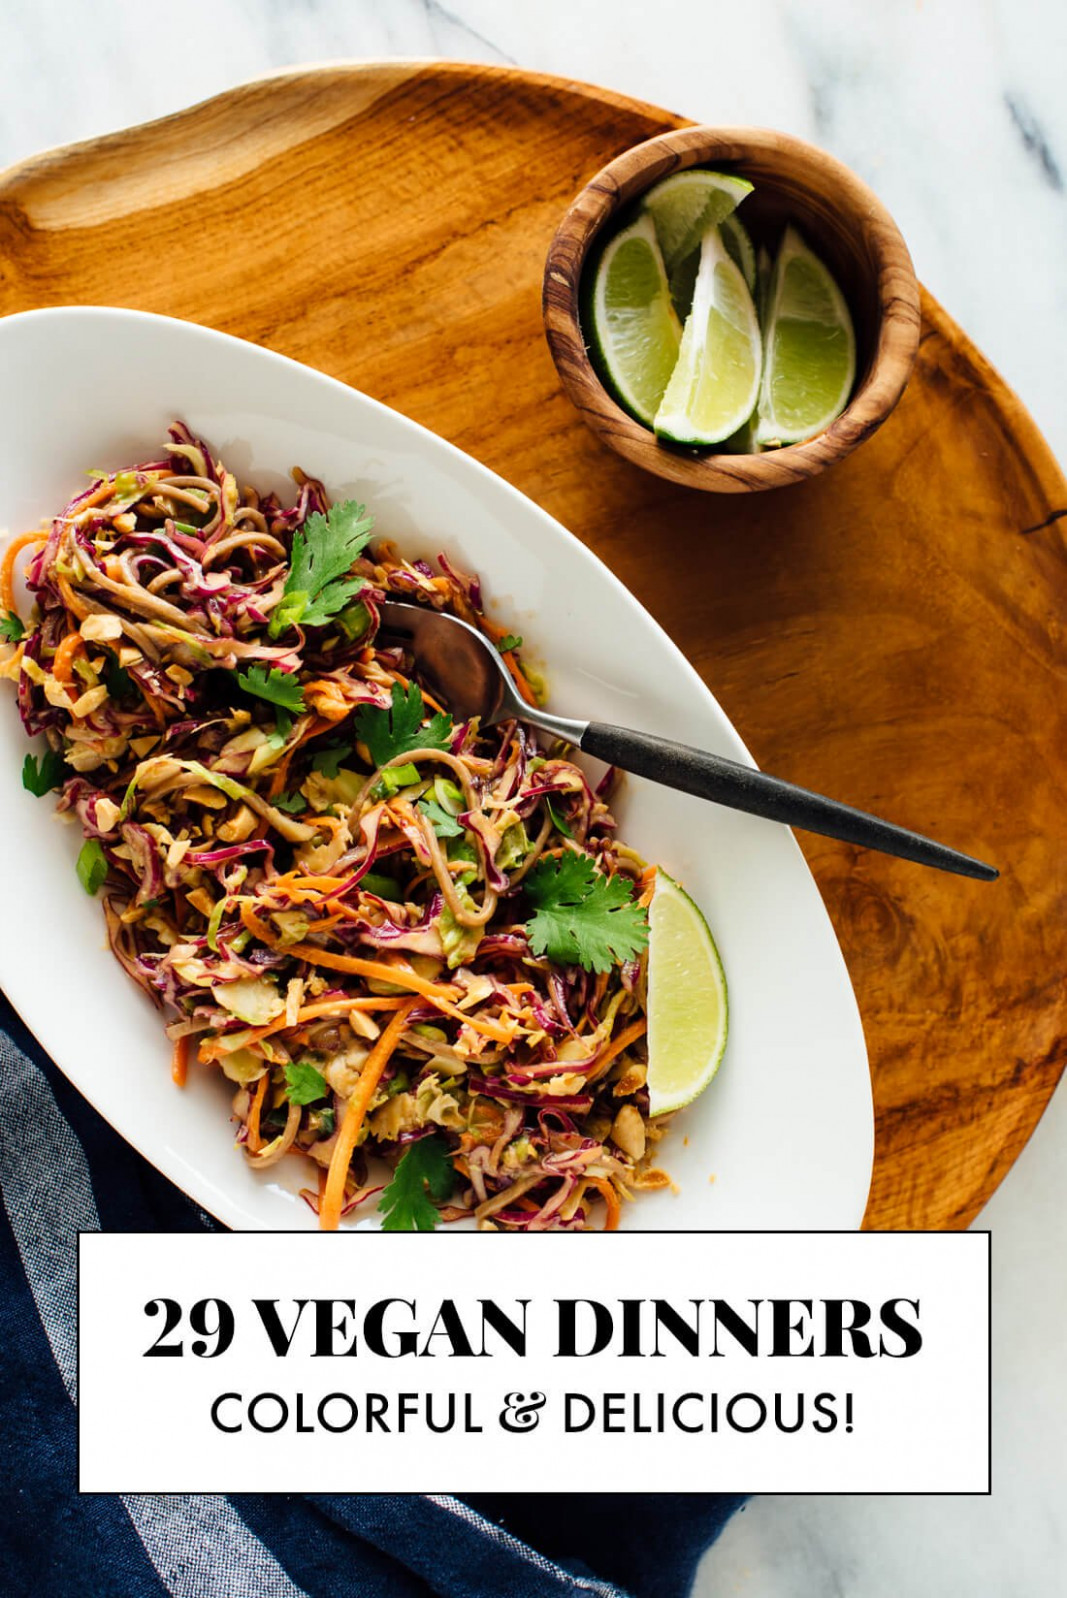 13 Delicious Vegan Dinner Recipes - Cookie and Kate - recipes entertaining vegetarian